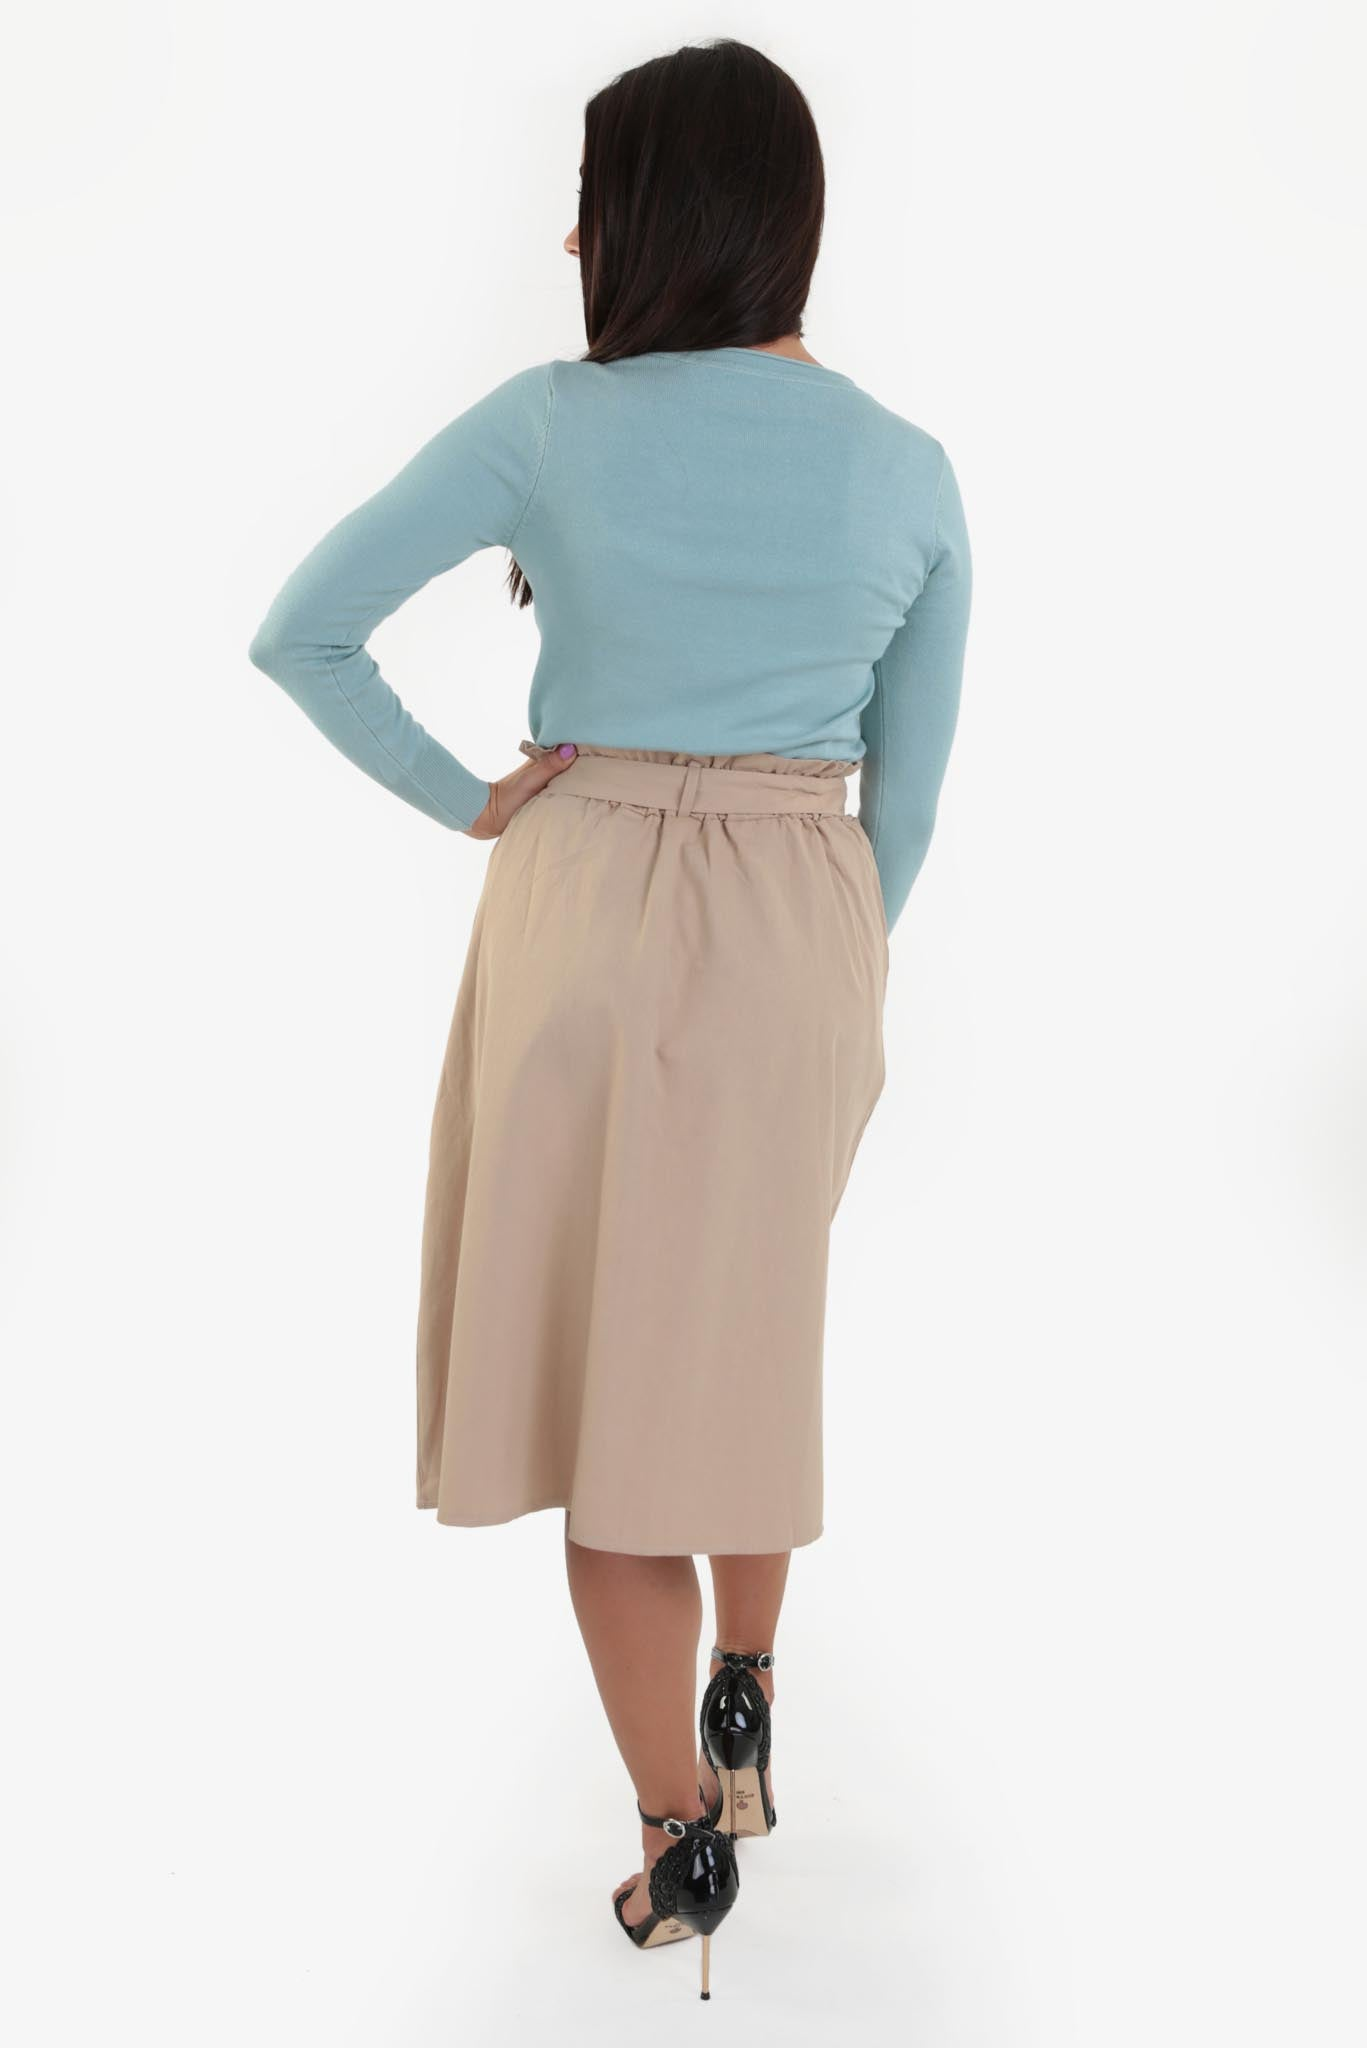 Midi Skirt - Beige | Raw Orange